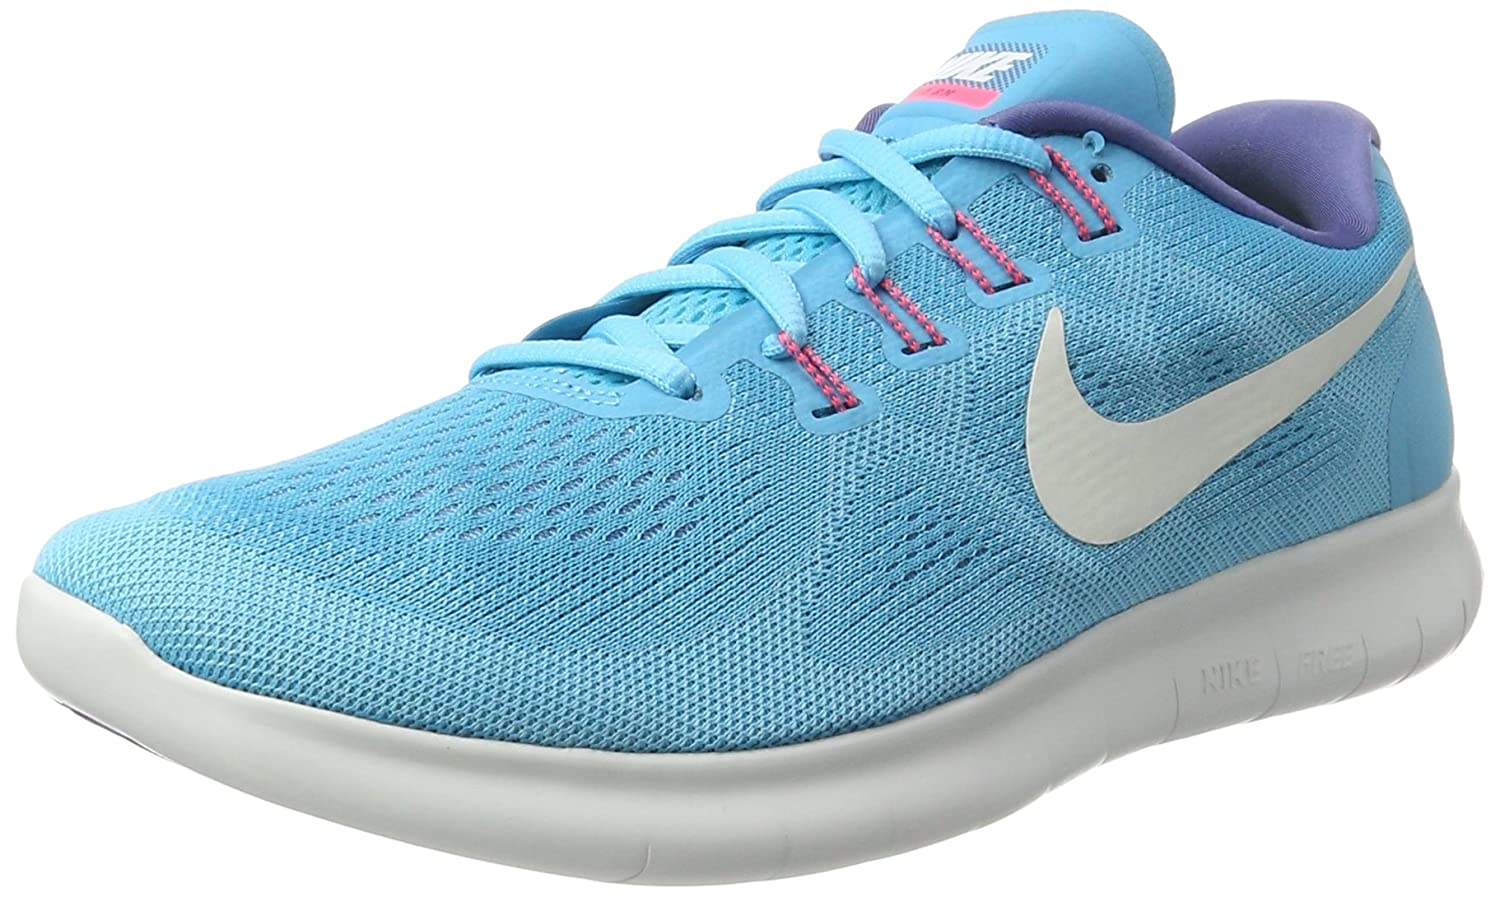 NIKE Women's Free RN 2017 Running Shoe B01K0NQFGY 8.5 B(M) US|Chlorine Blue/Off White/Polarized Blue